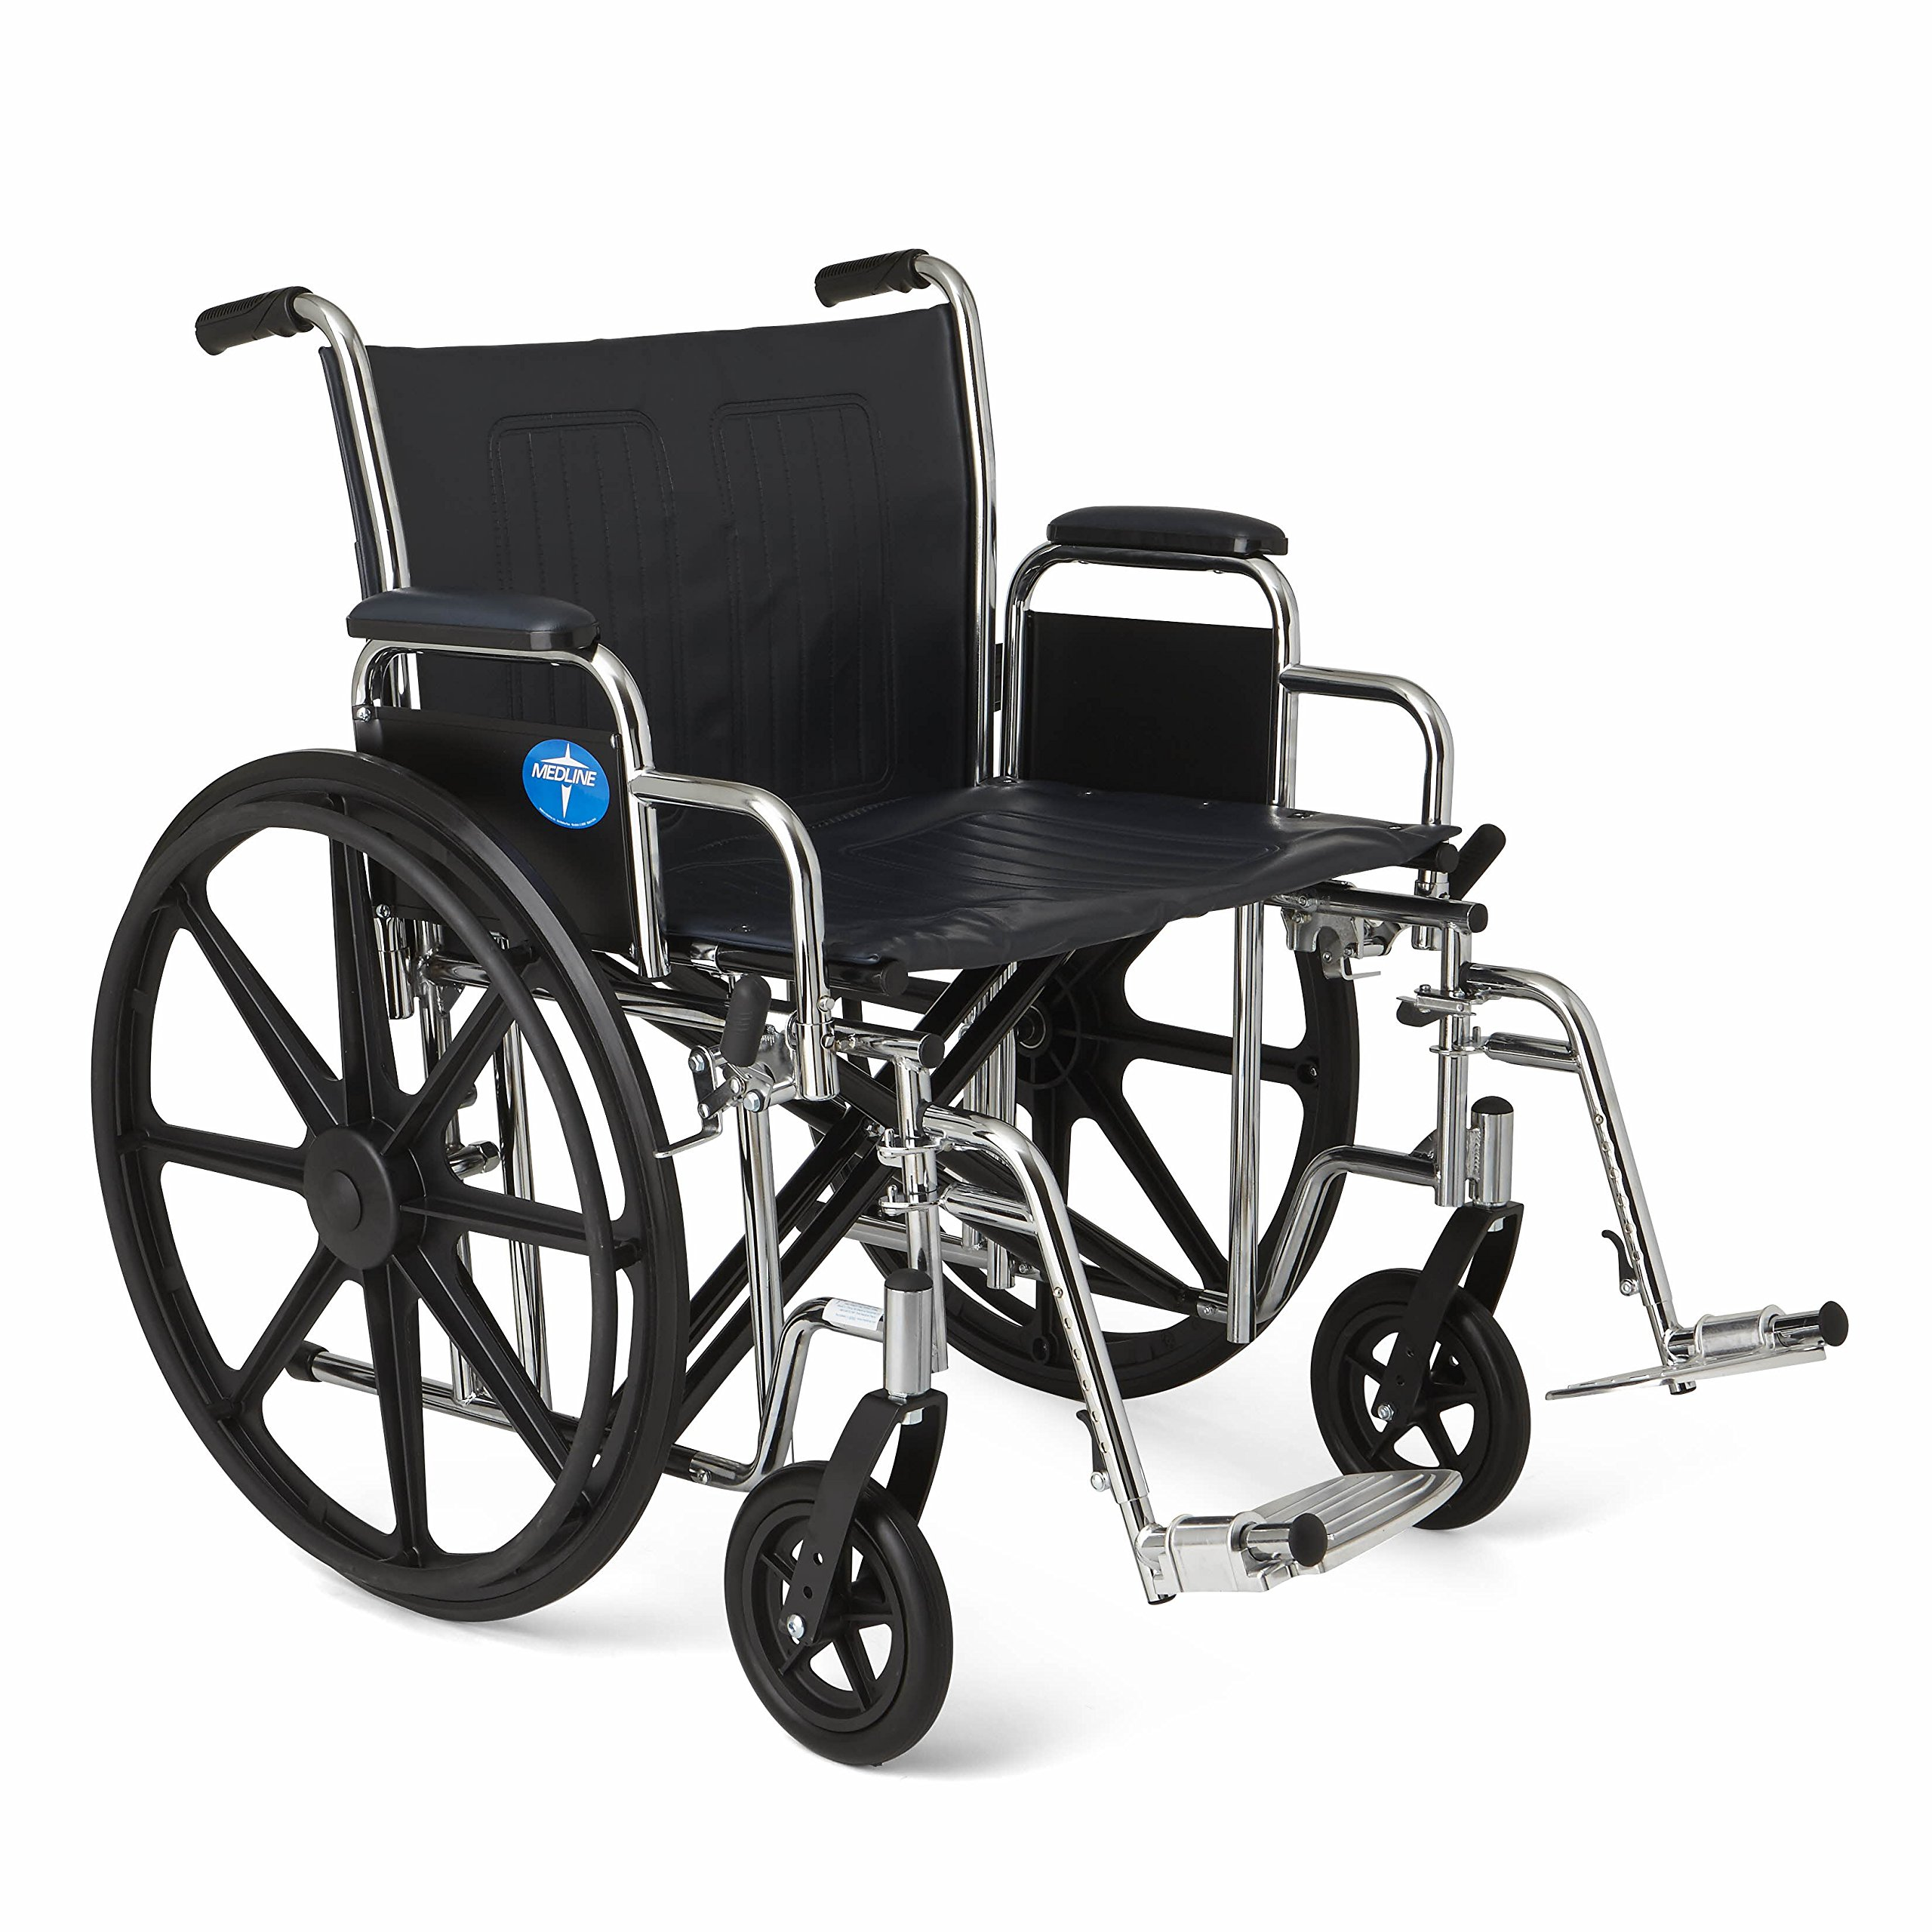 Medline Excel Extra-Wide Wheelchair, 24'' Wide Seat, Desk-Length Removable Arms, Swing Away Footrests, Chrome Frame by Medline